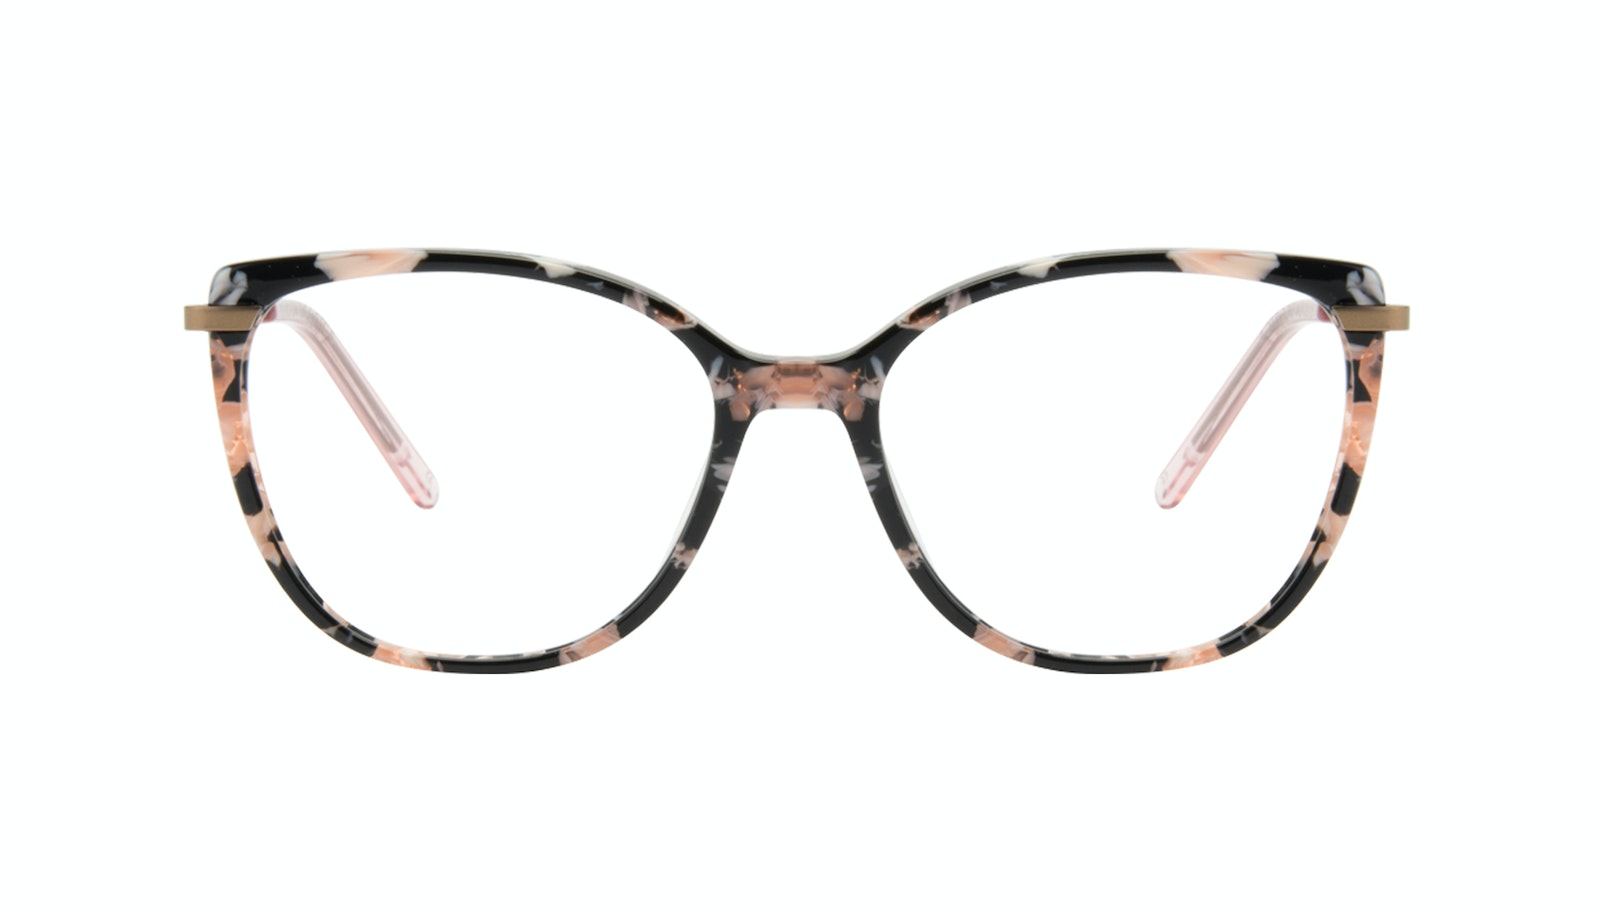 Affordable Fashion Glasses Rectangle Square Eyeglasses Women Illusion Licorice